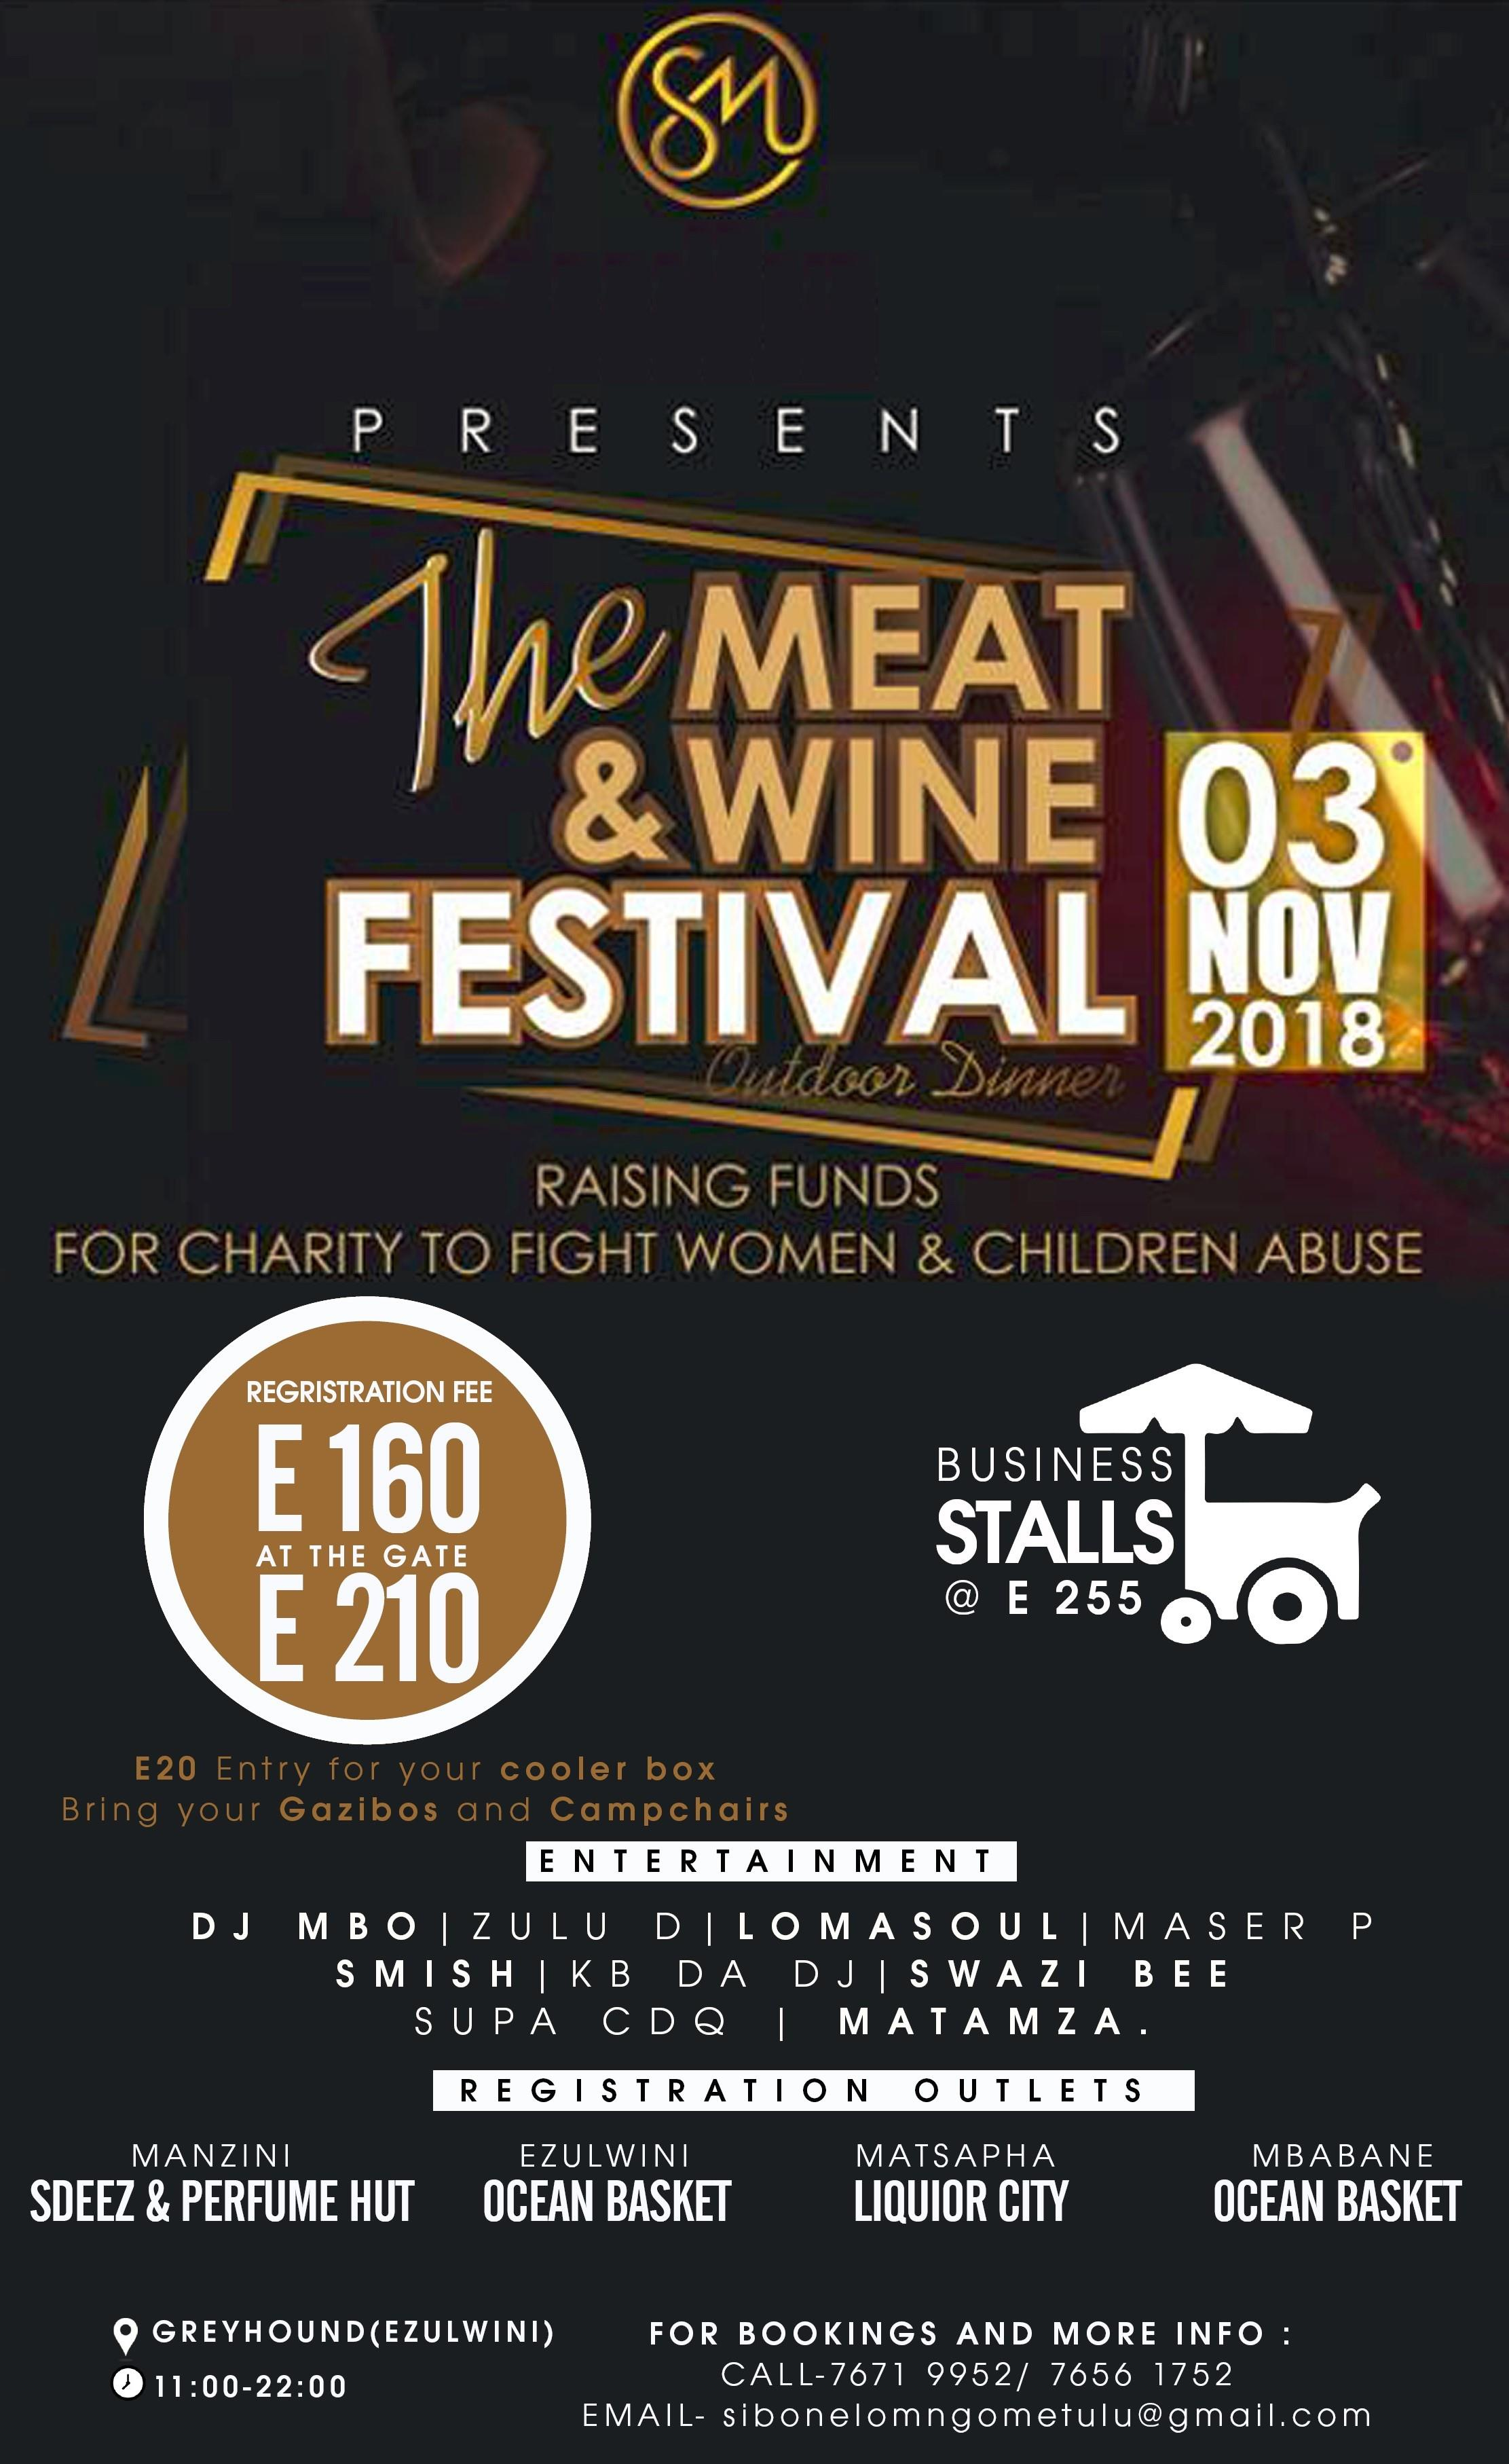 The Meat and Wine Festival